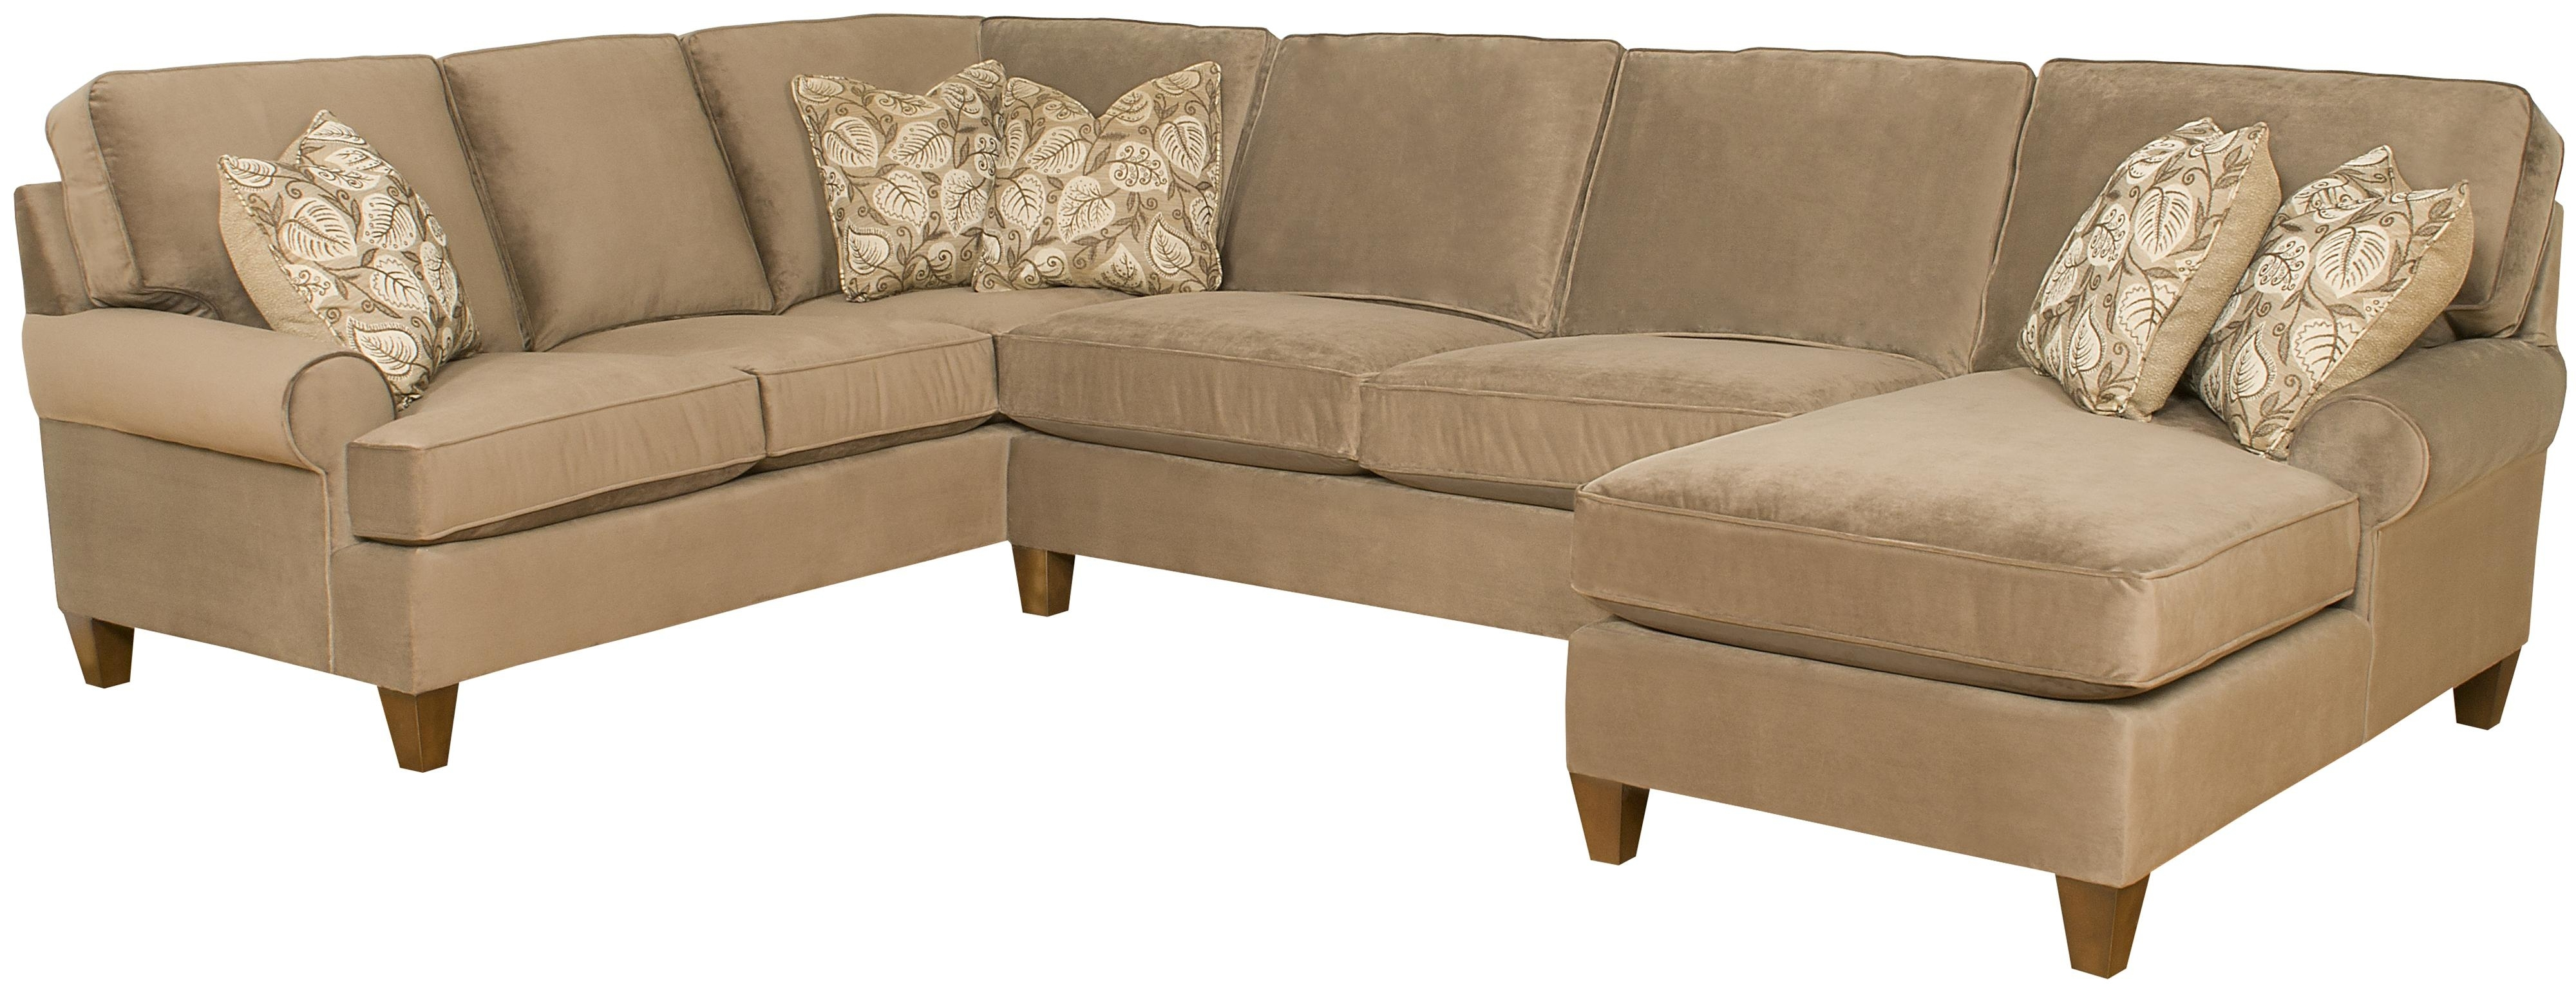 Chatham Custom Sectionalking Hickory | Furniture | Pinterest Intended For Hickory Nc Sectional Sofas (View 9 of 10)